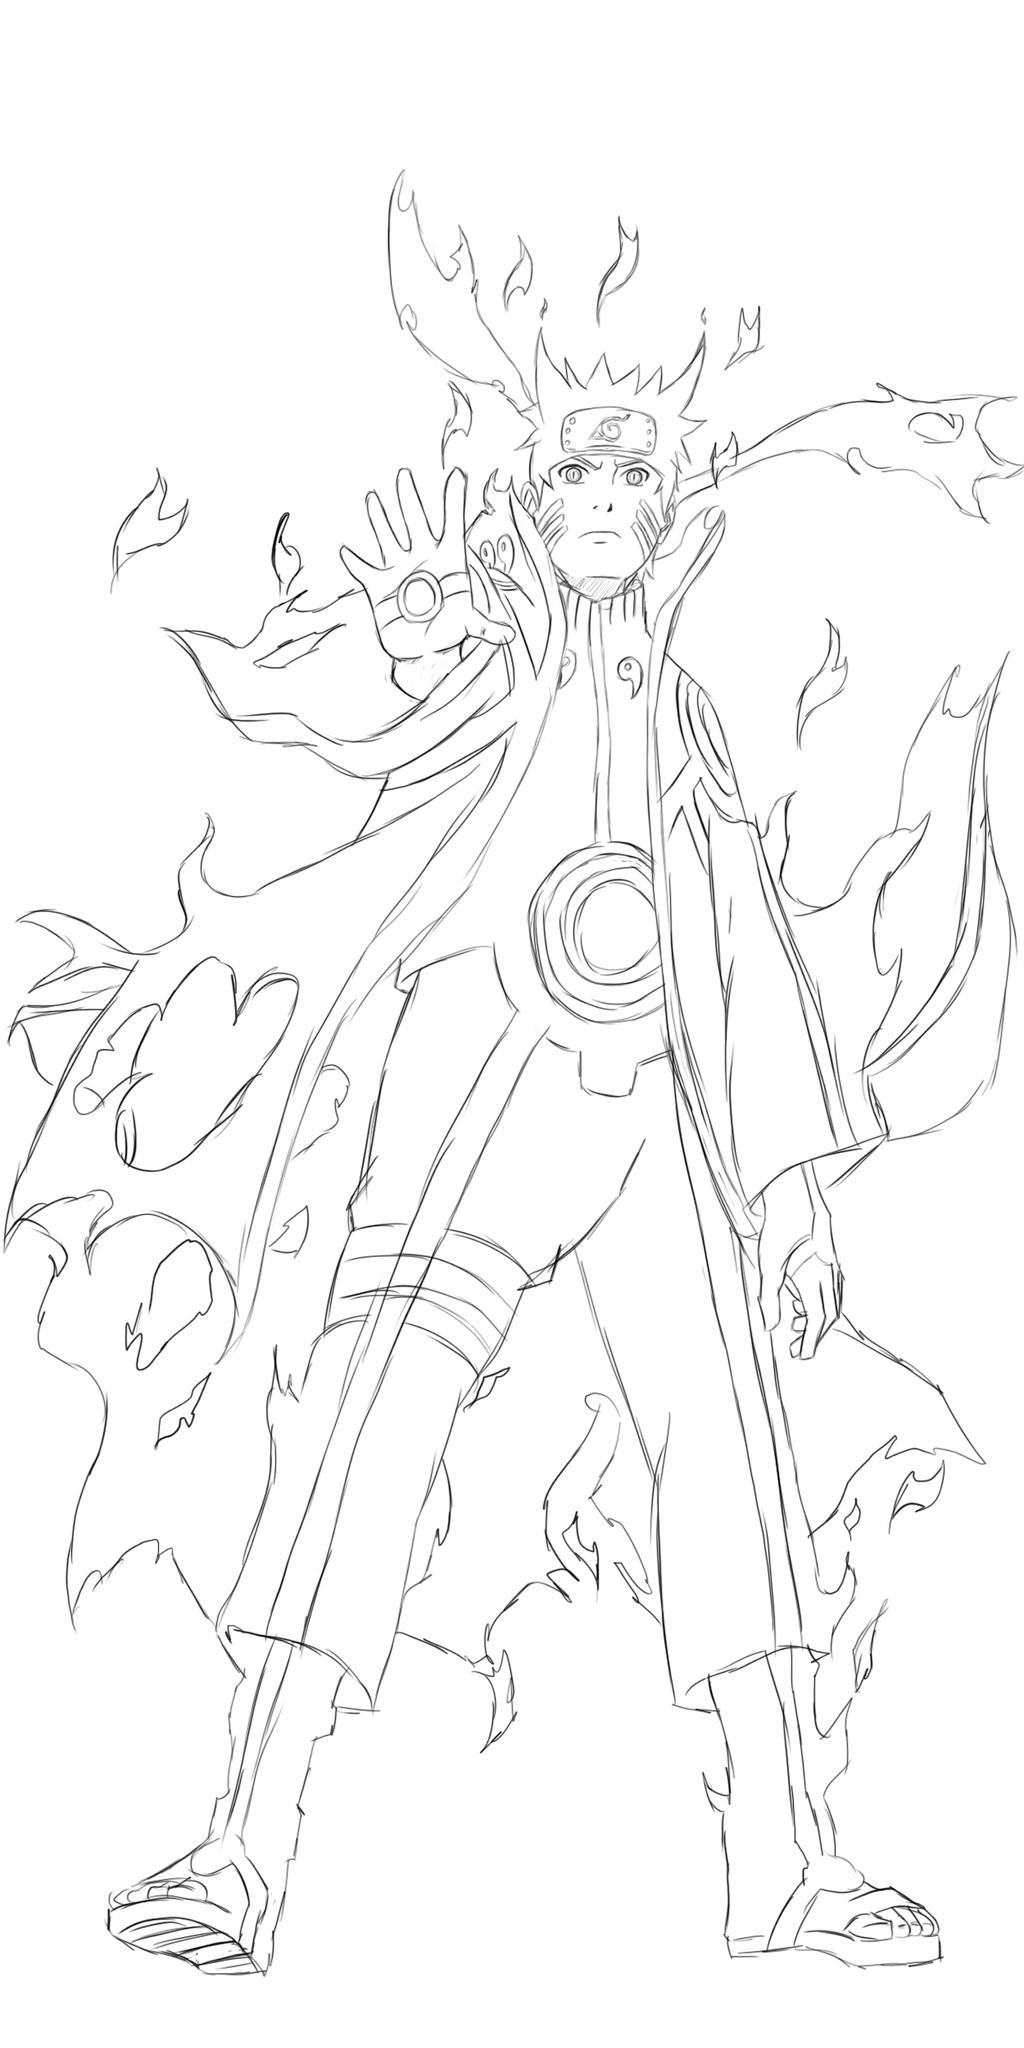 Six Paths Madara Drawing Naruto Sage of Six Paths Mode